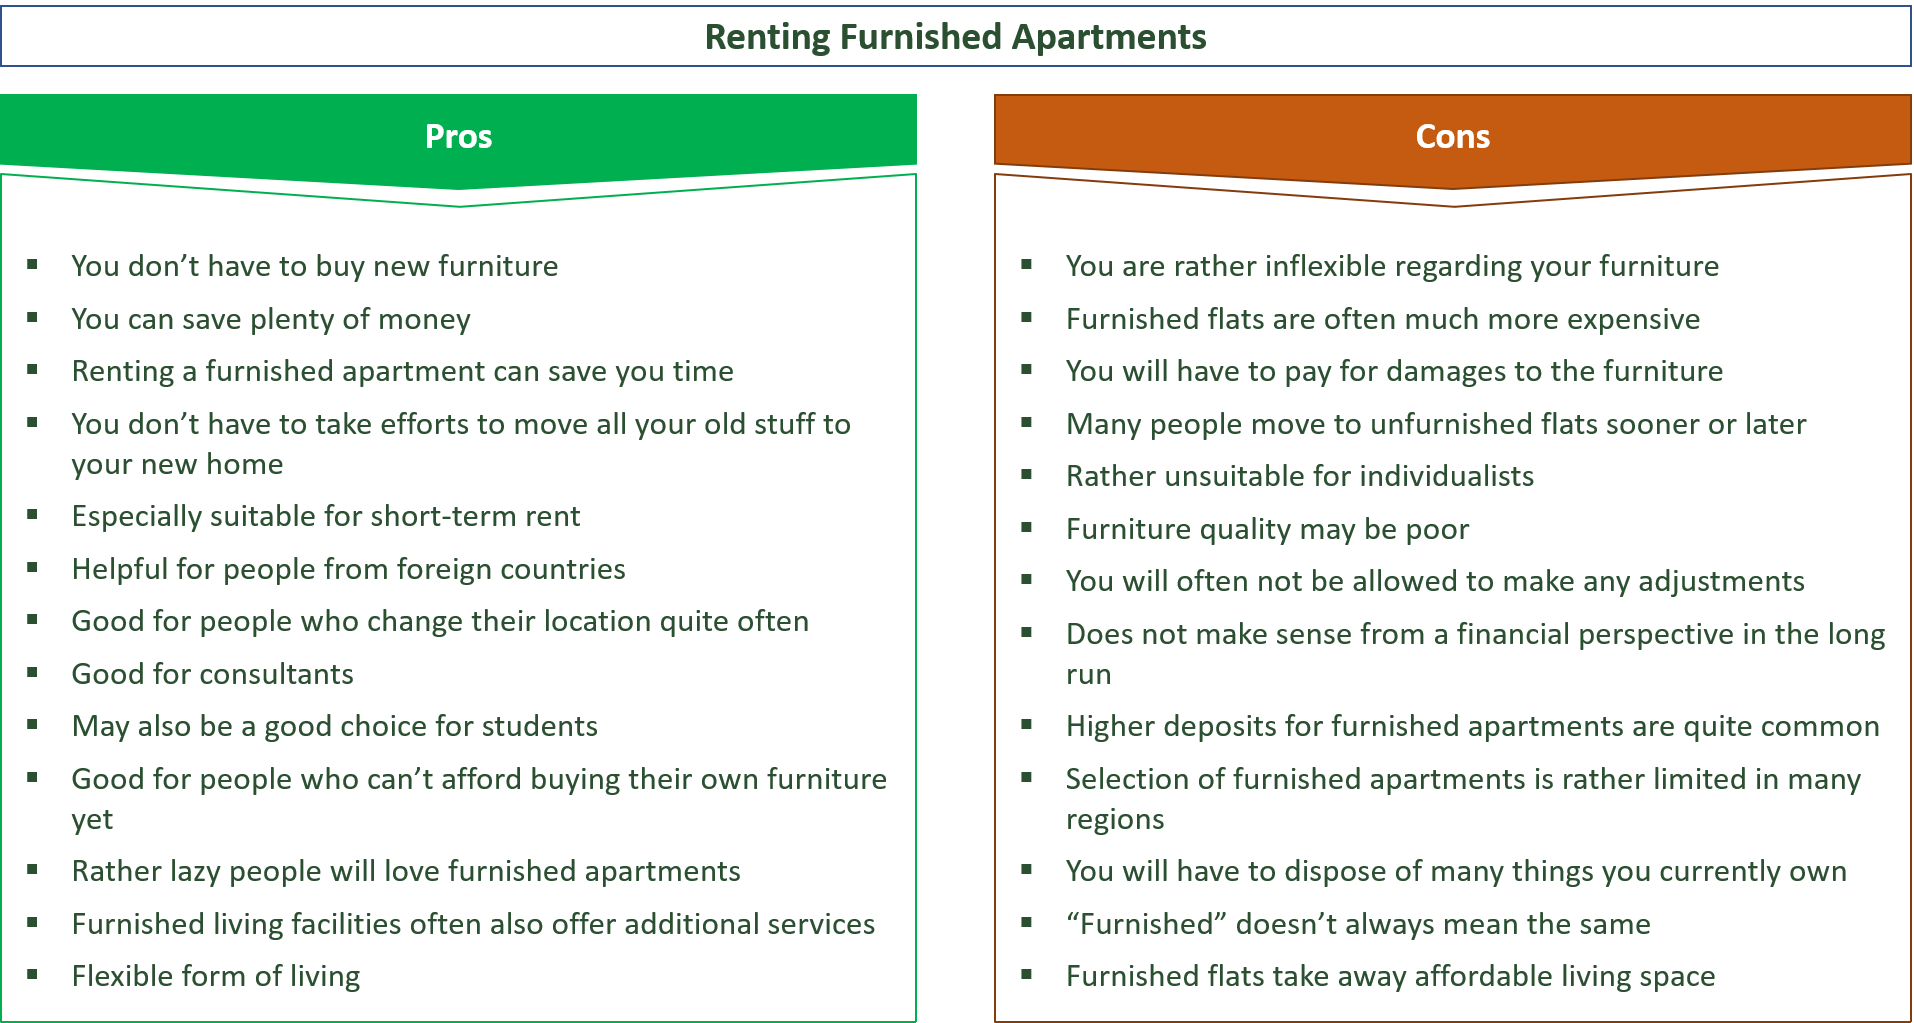 advantages and disadvantages of renting a furnished apartment